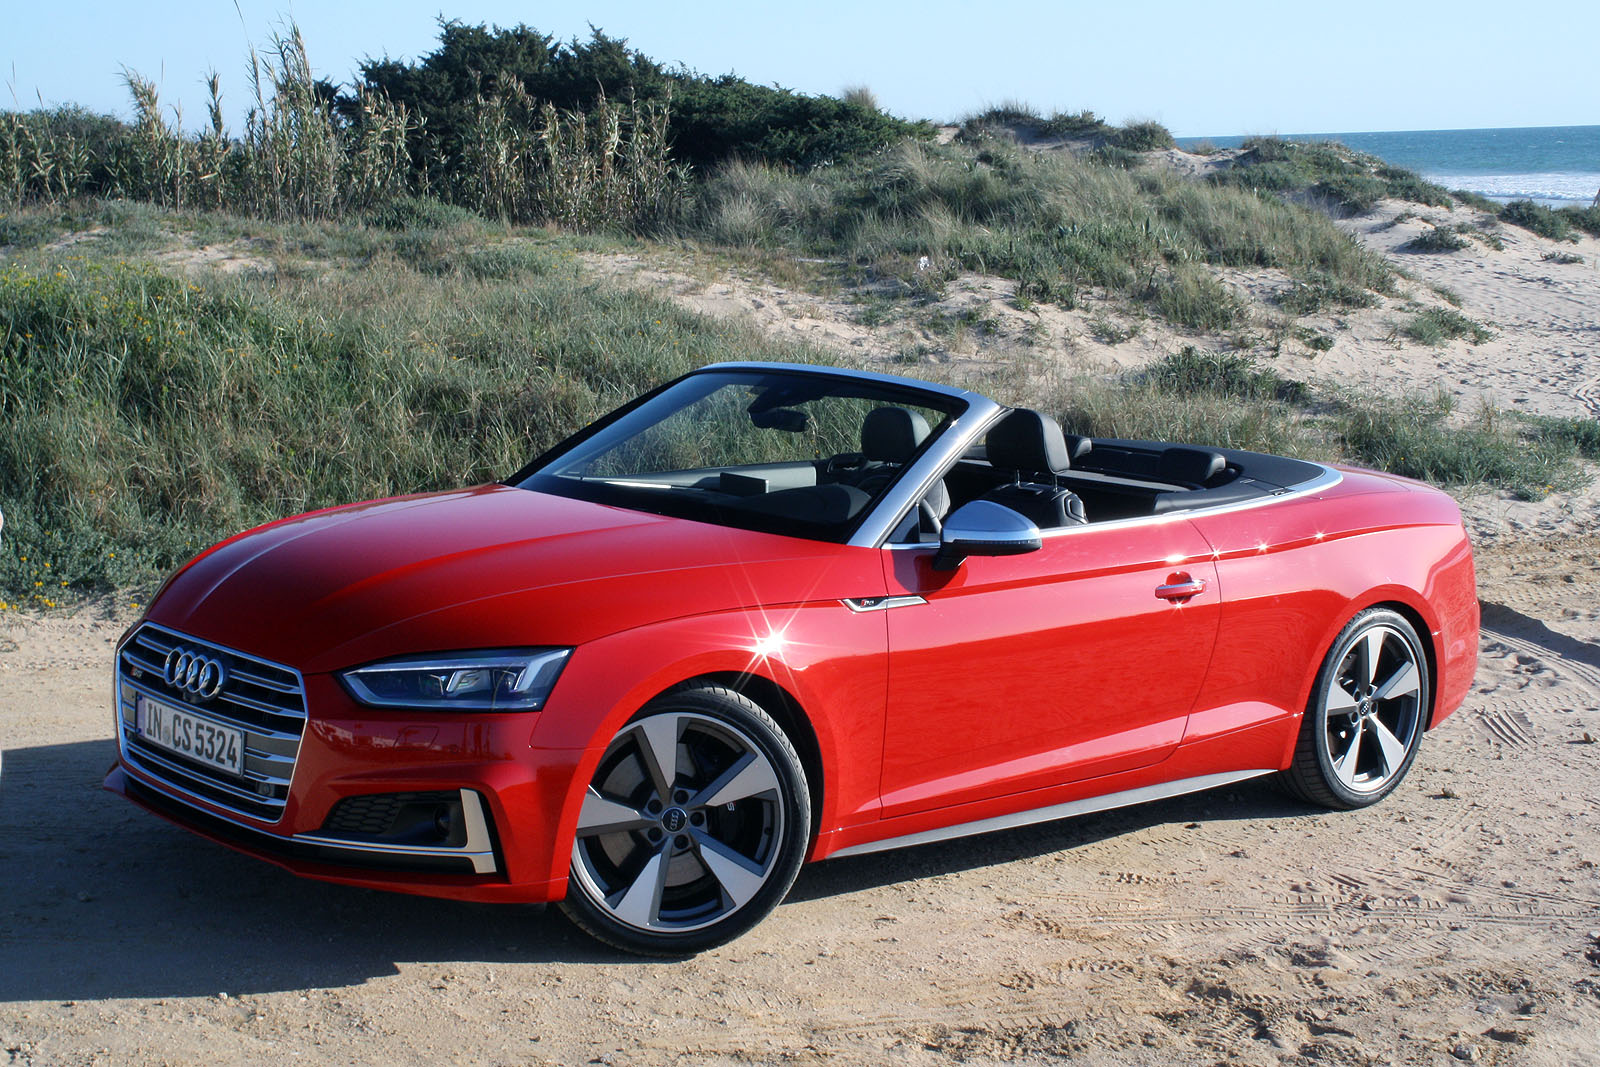 2018 Audi S5 Cabriolet And A5 16